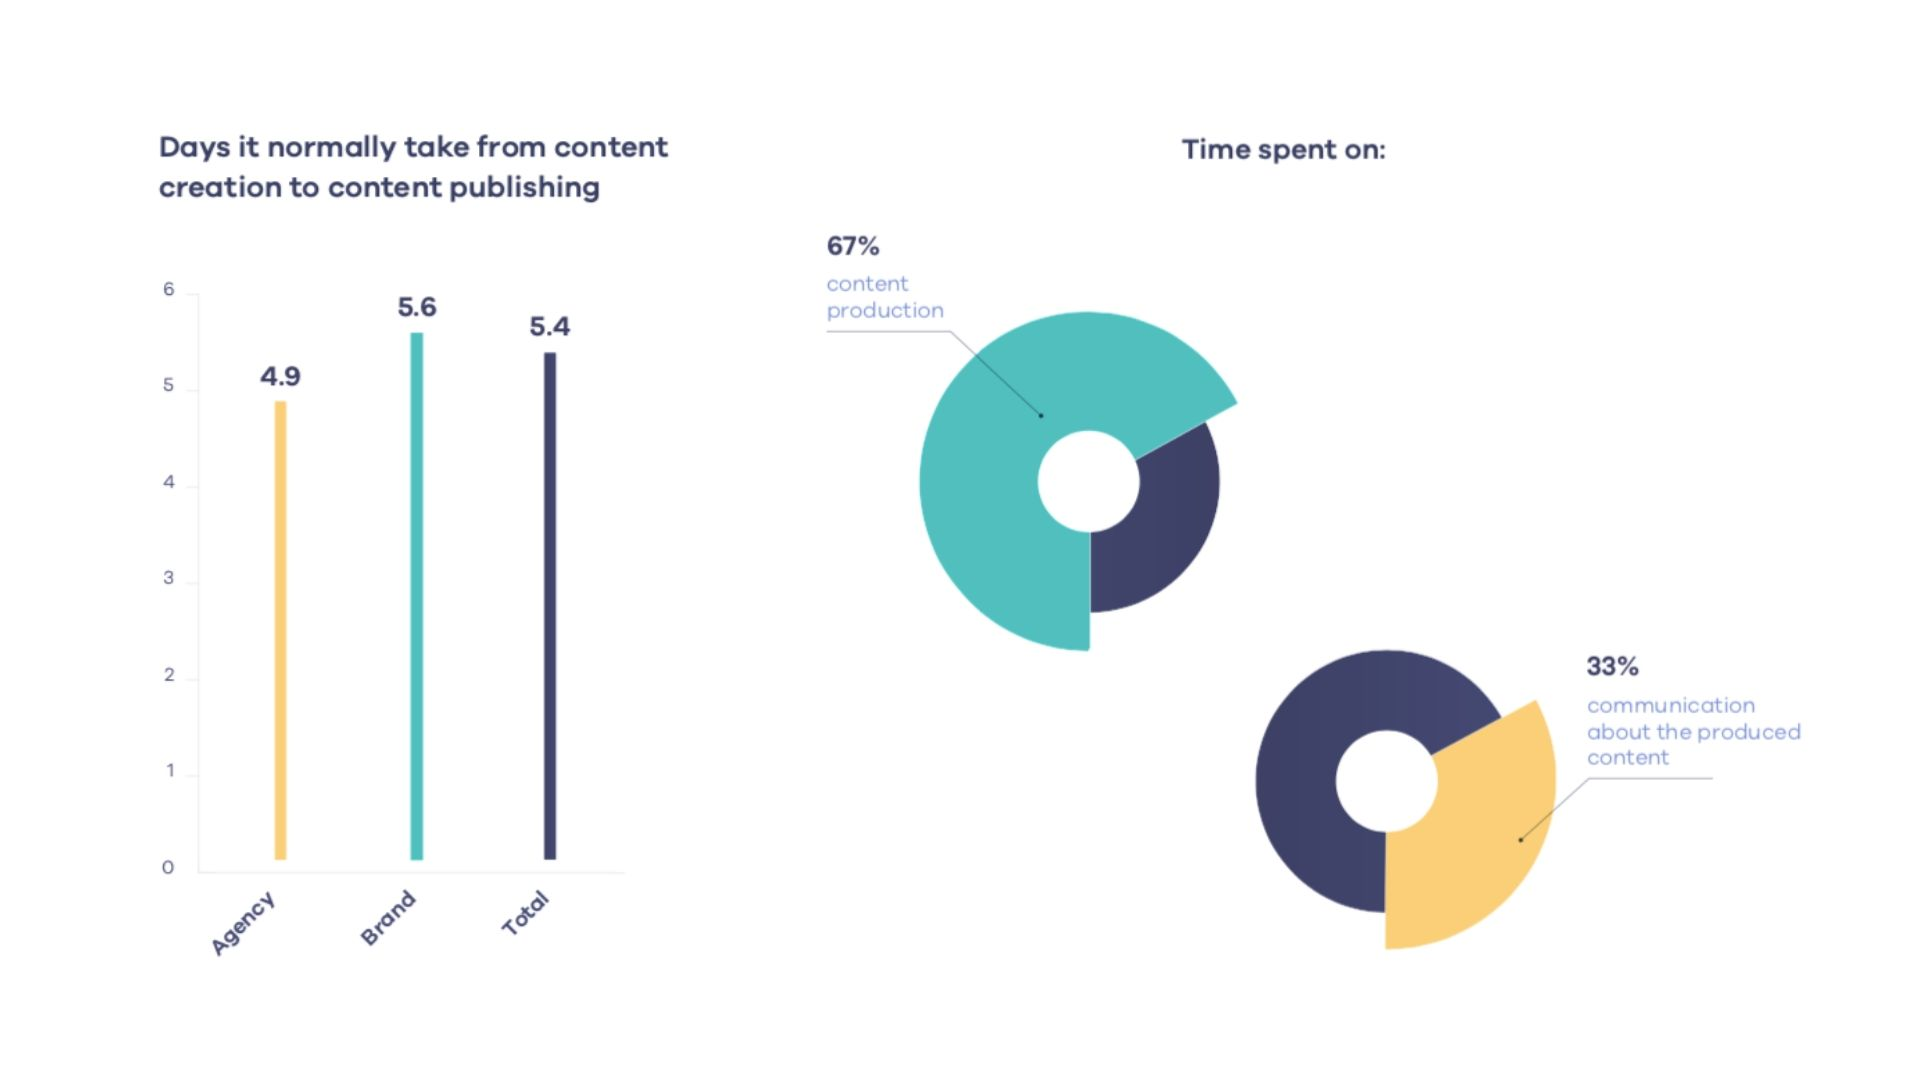 From content creation to content publishing